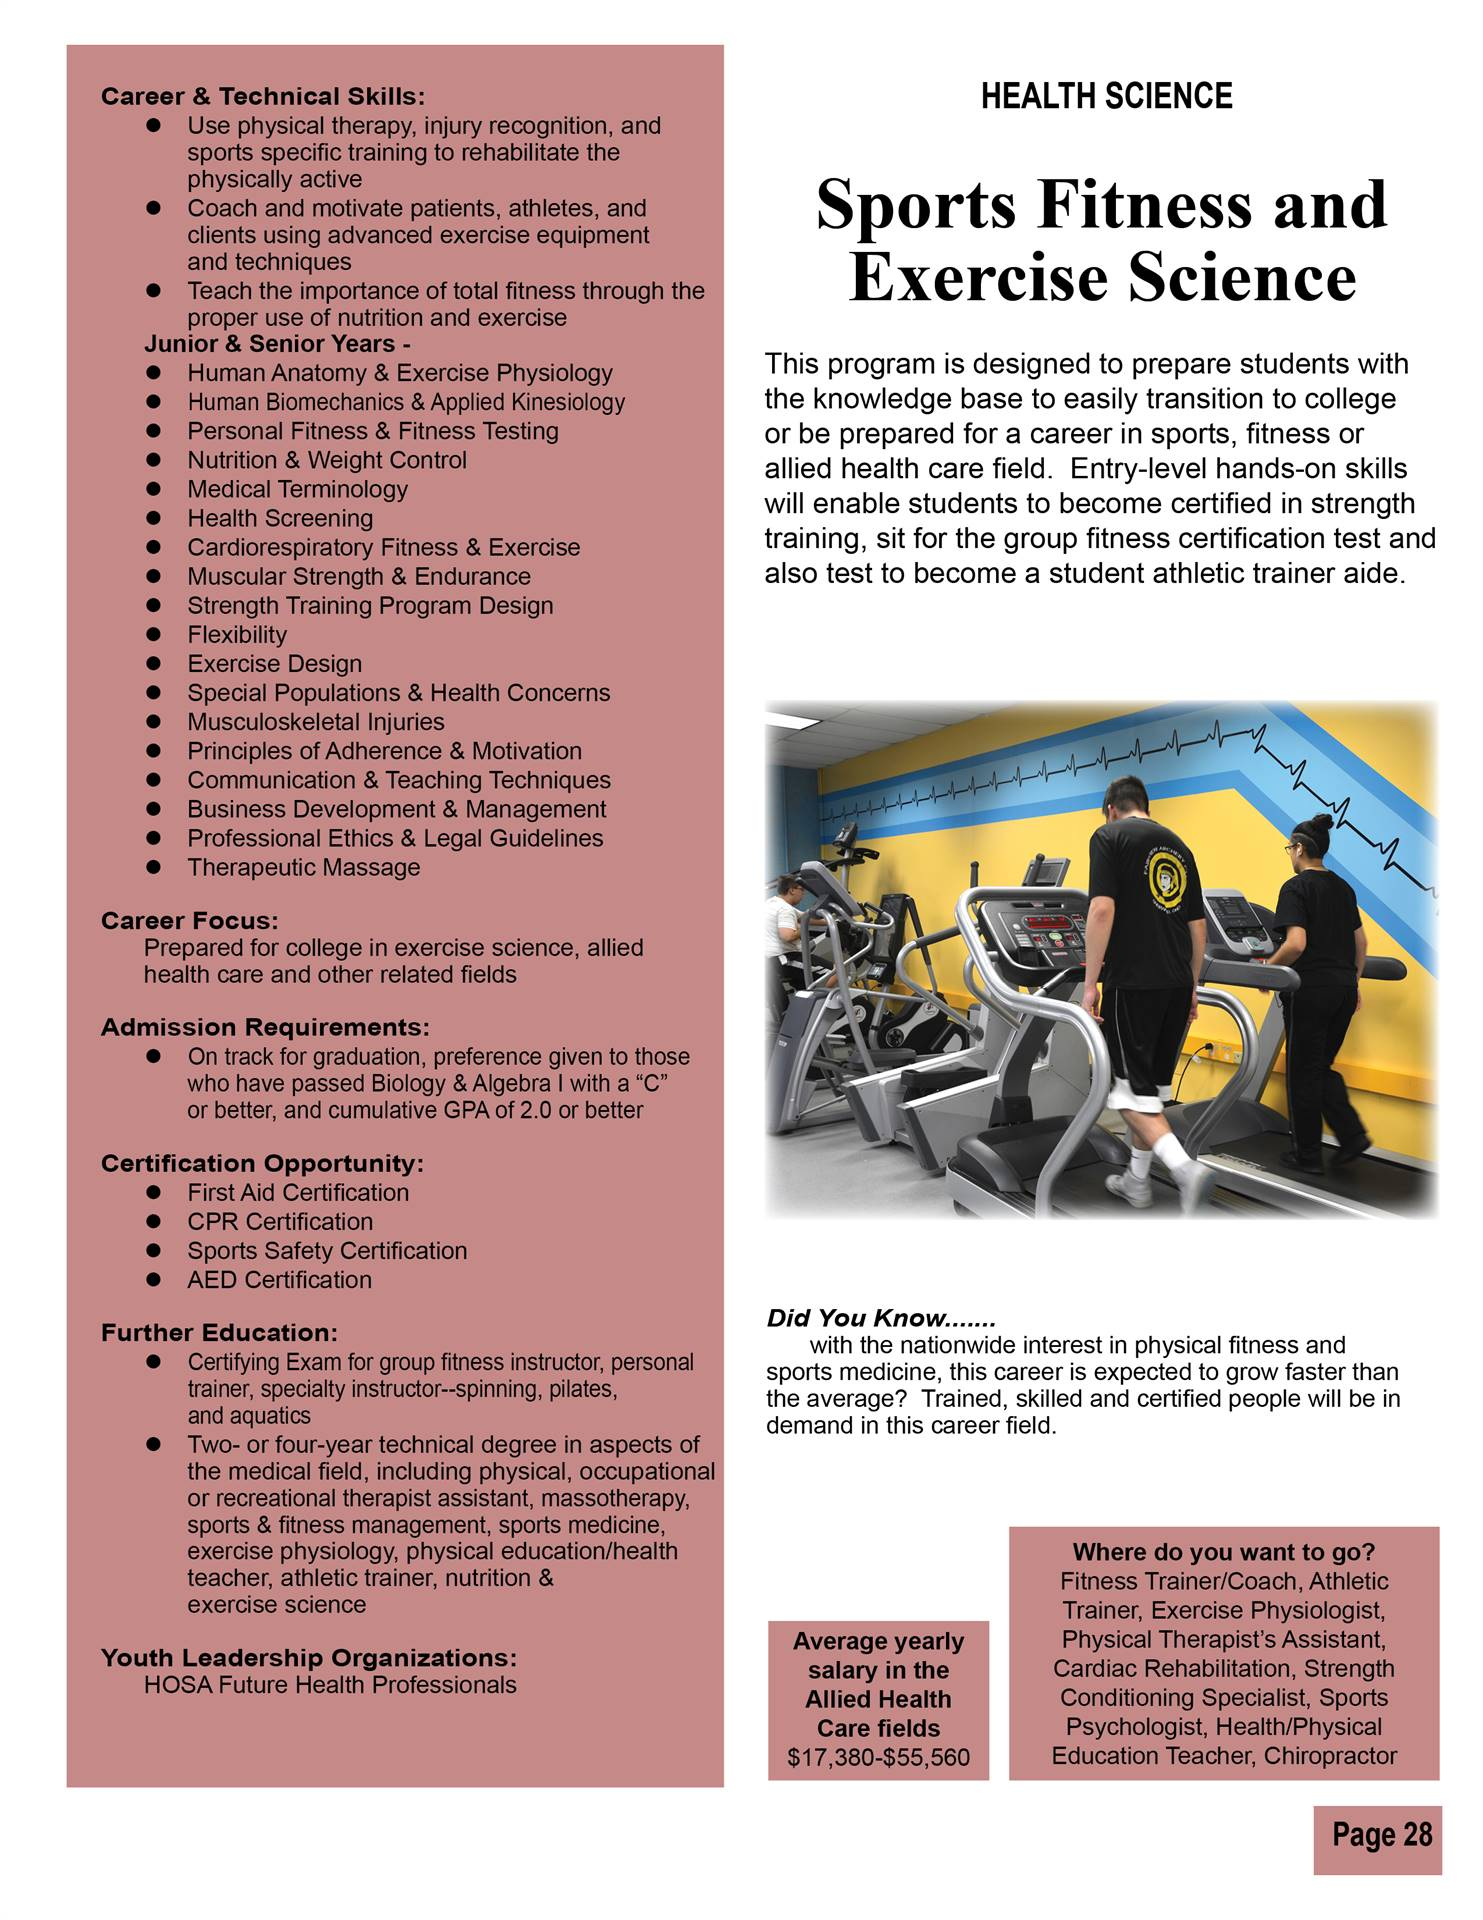 Sports Fitness & Exercise Science